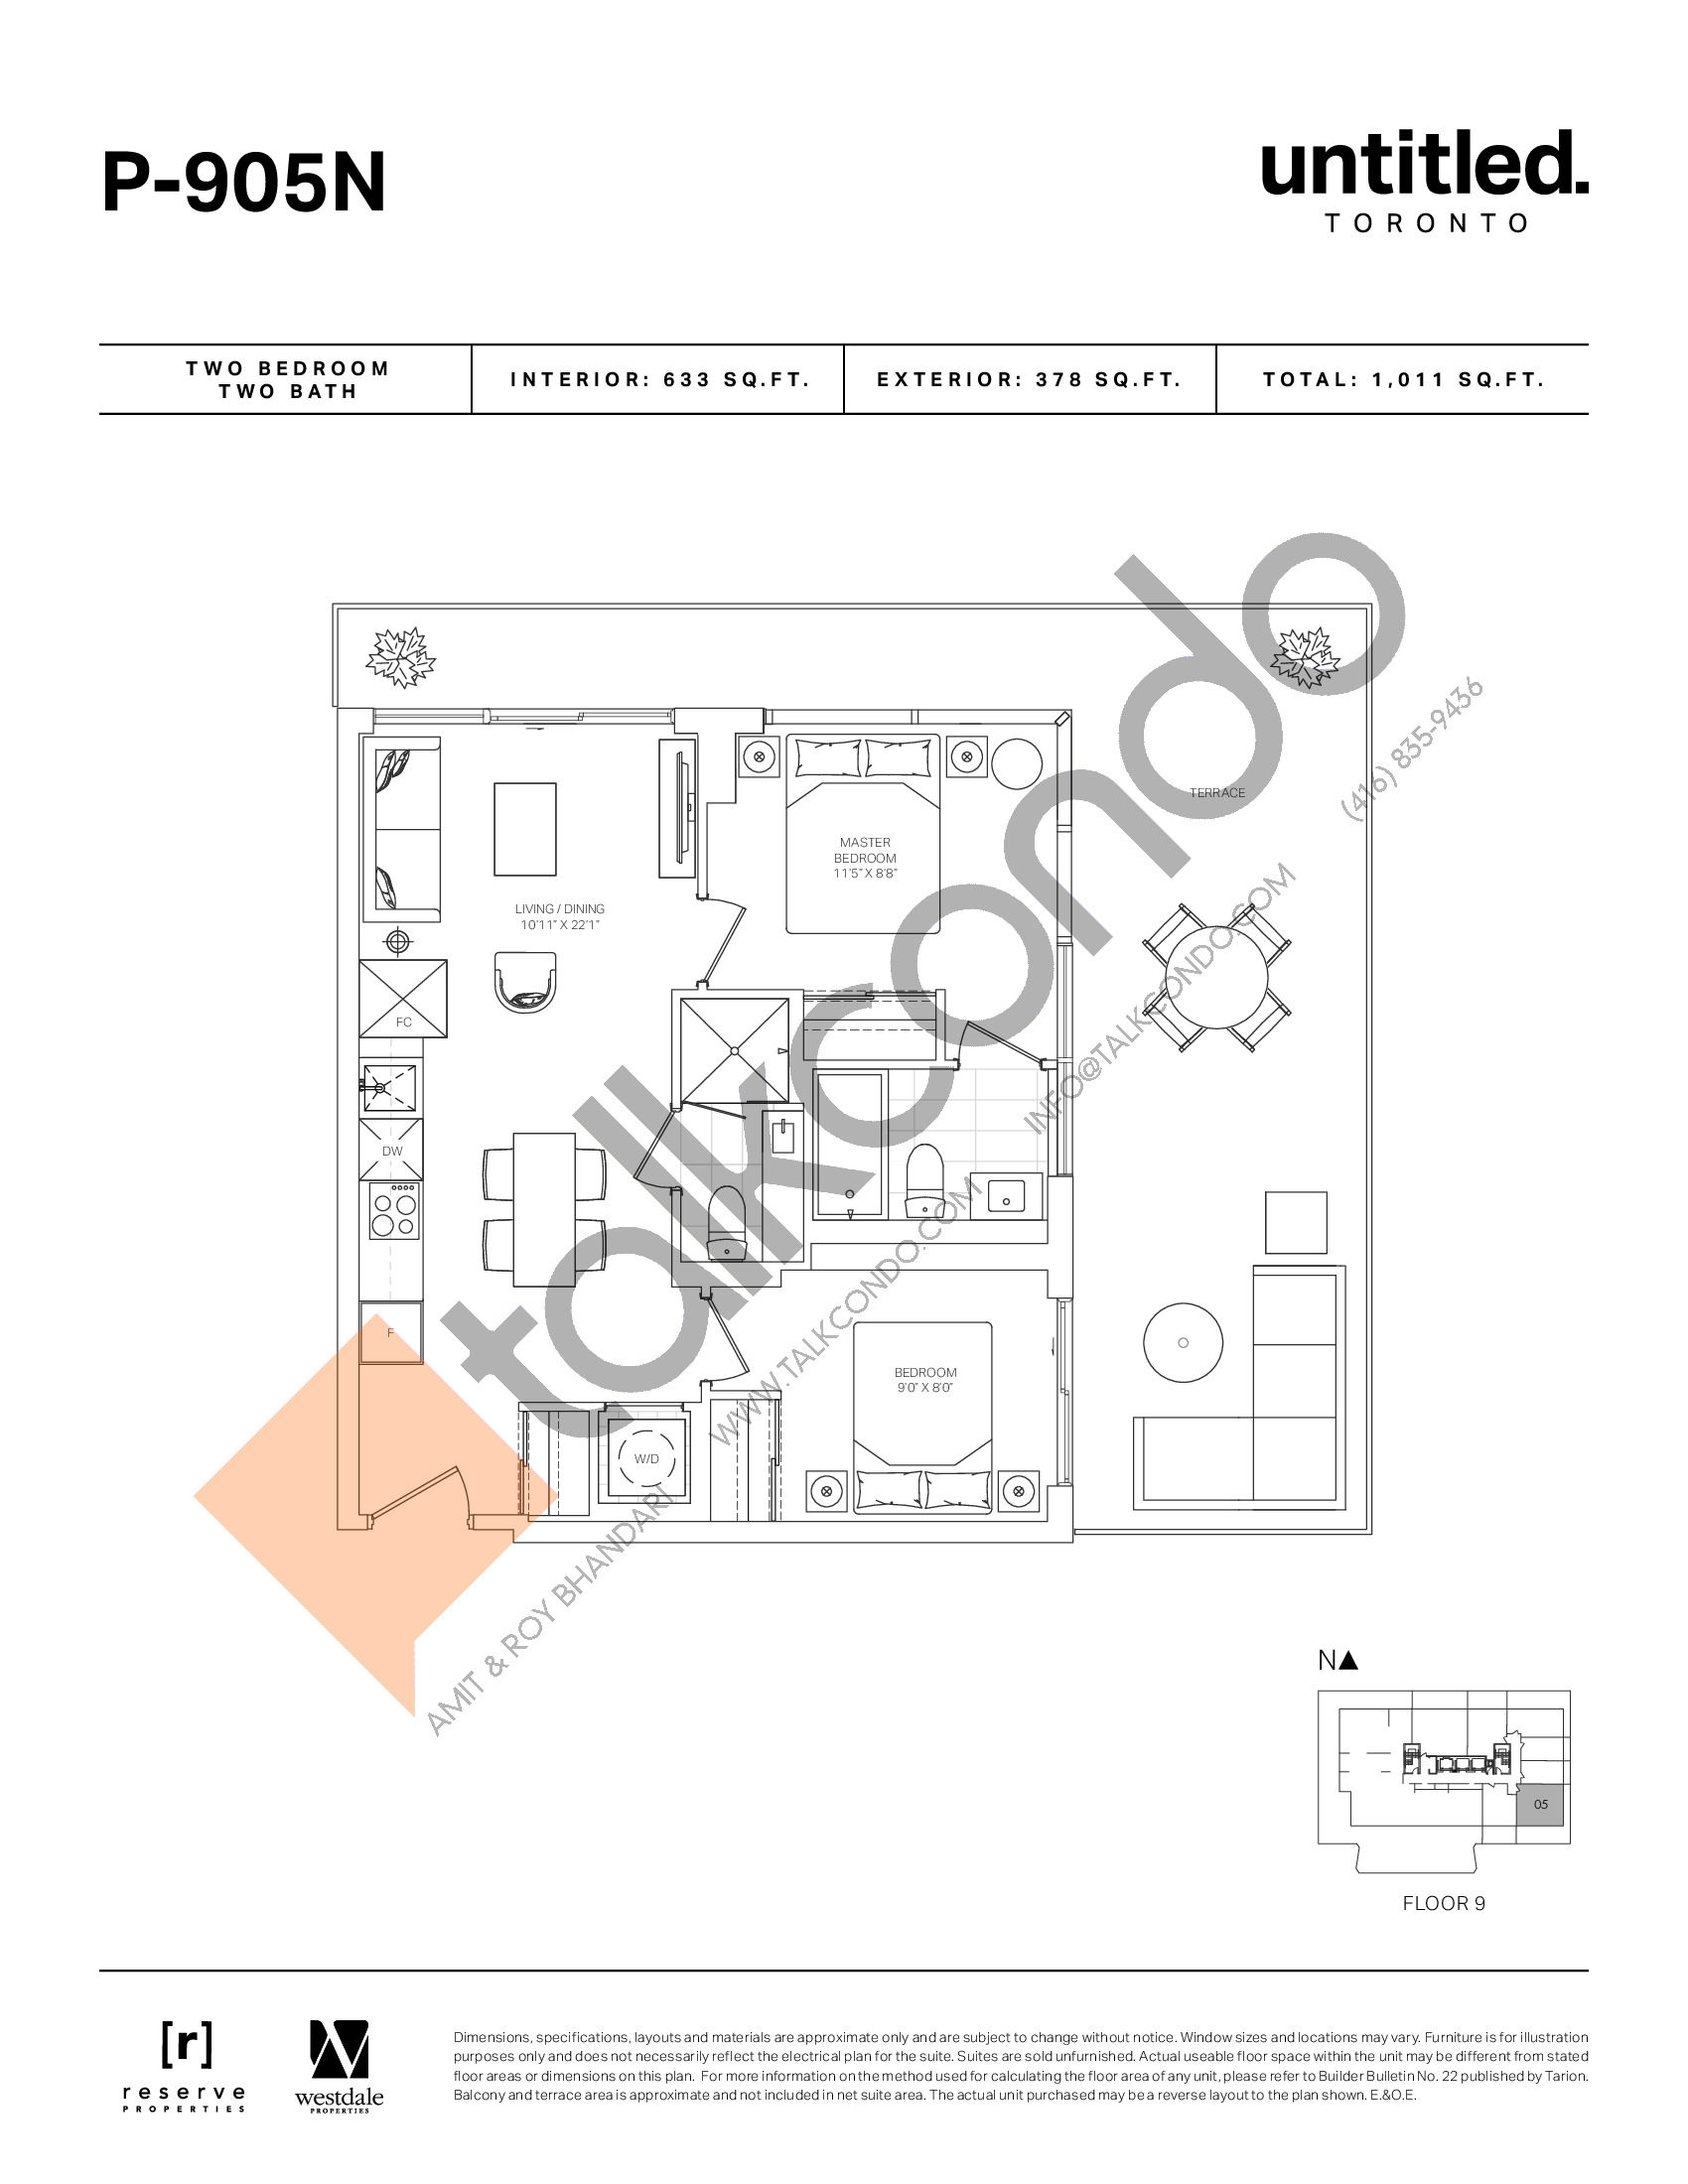 P-905N Floor Plan at Untitled North Tower Condos - 633 sq.ft